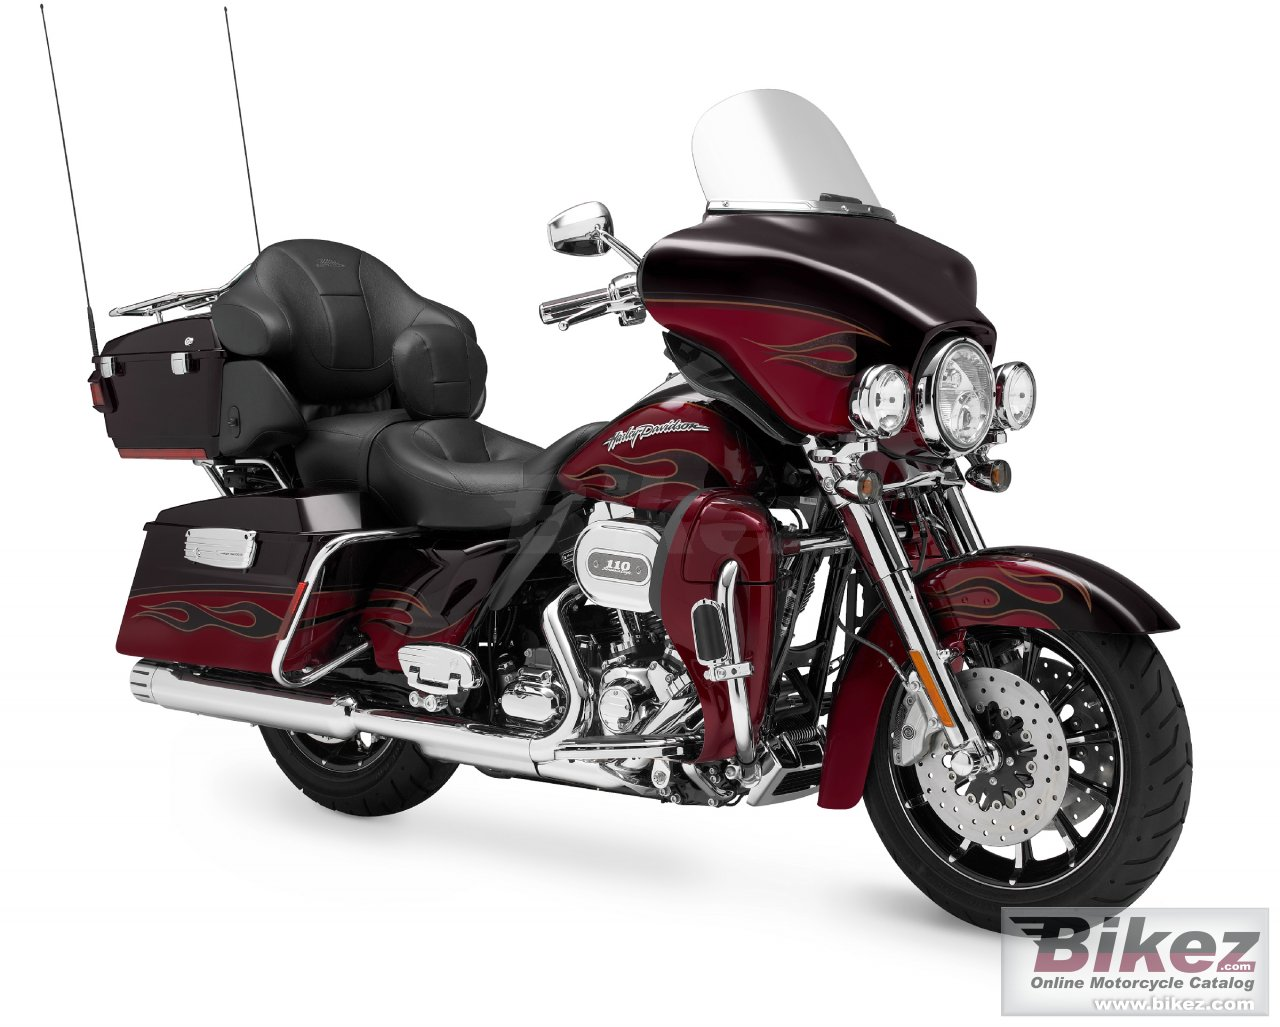 Big Harley-Davidson flhtcuse6 cvo ultra classic electra glide picture and wallpaper from Bikez.com